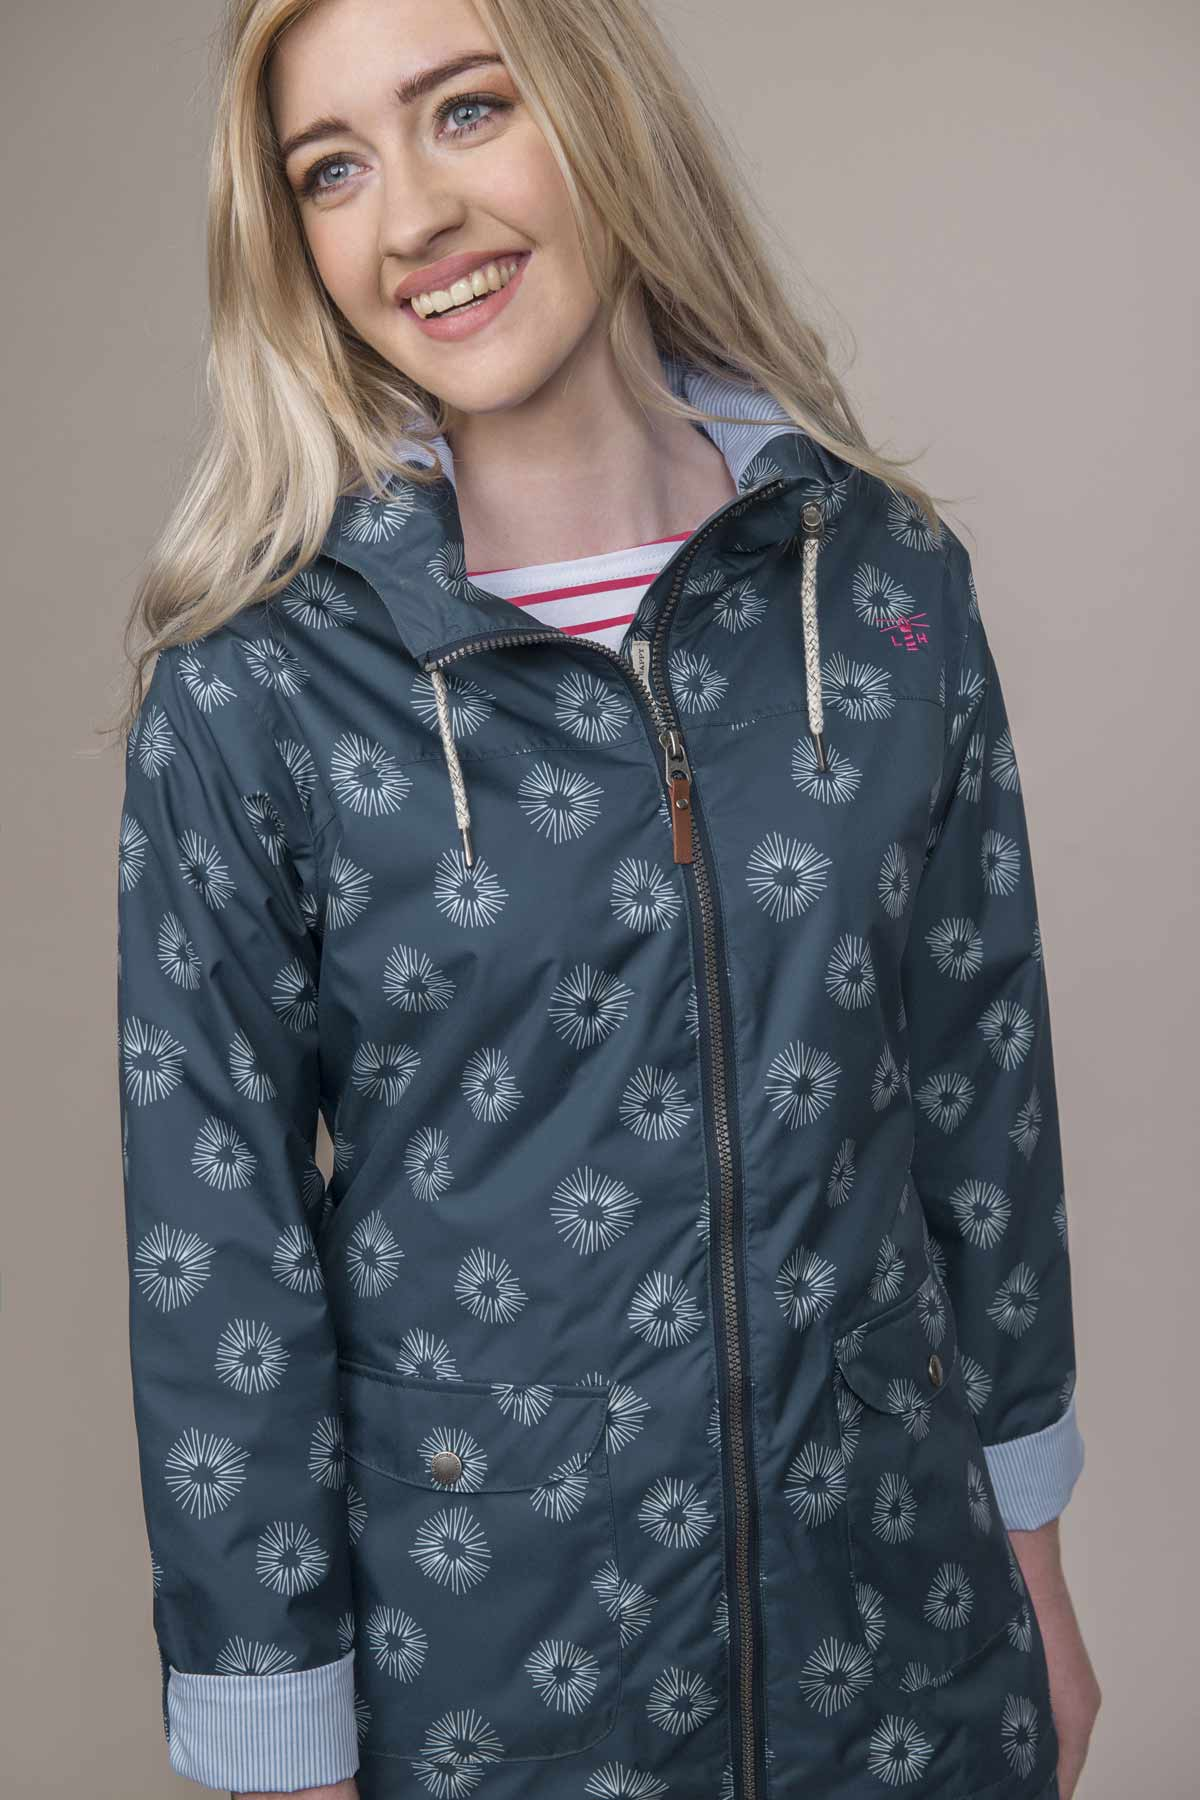 Lighthouse Anya women's navy print waterproof coat